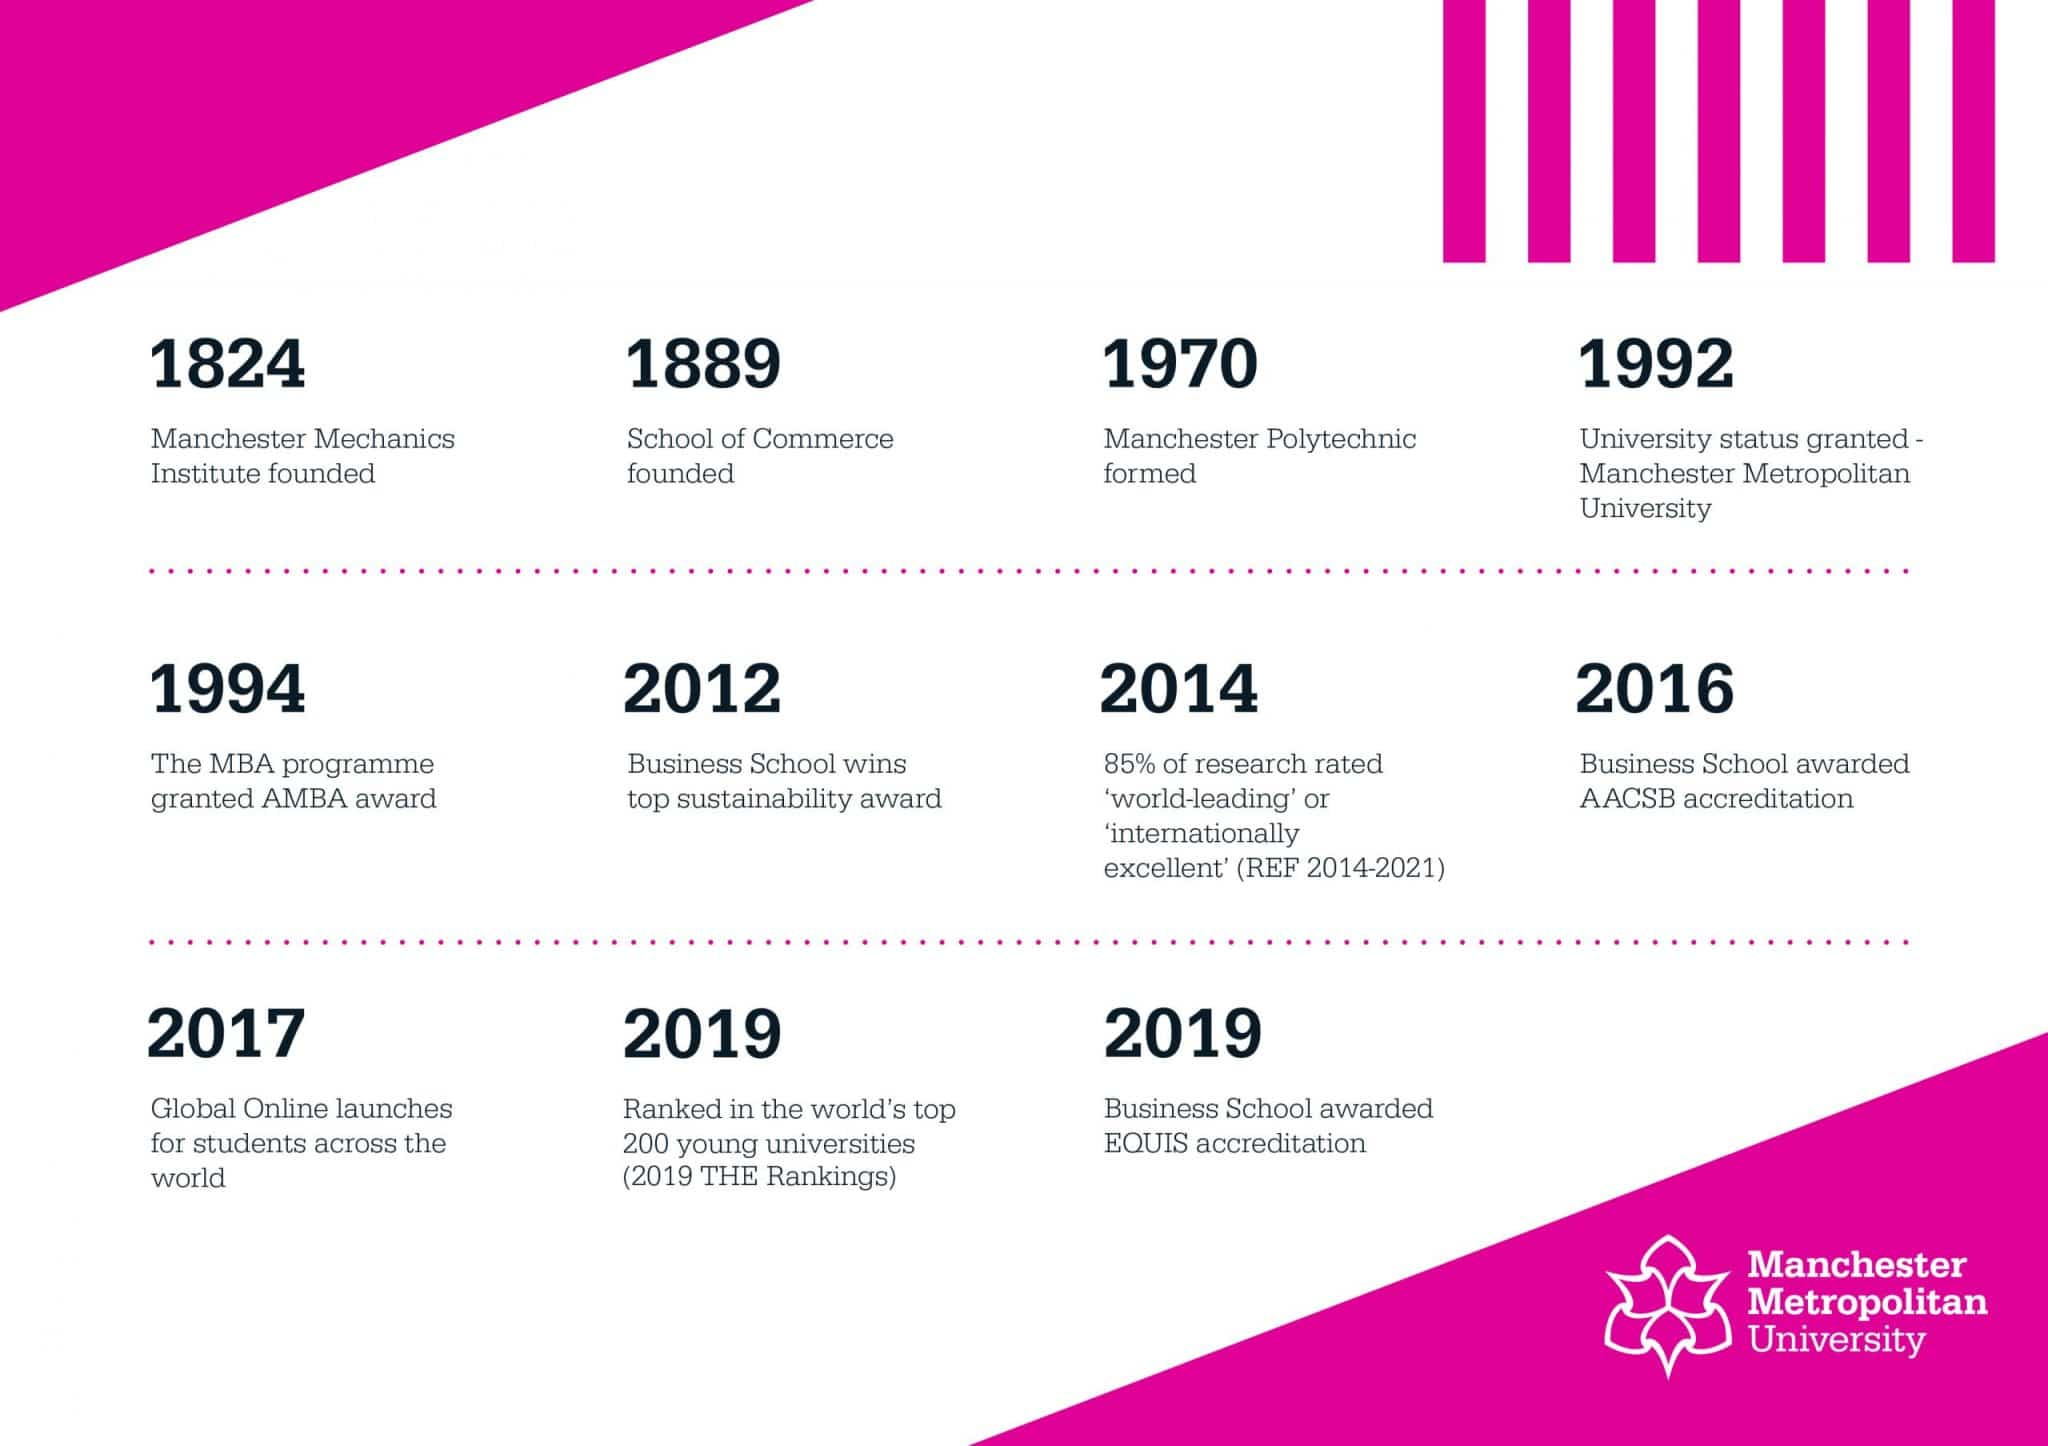 A timeline of Manchester Metropolitan University's history